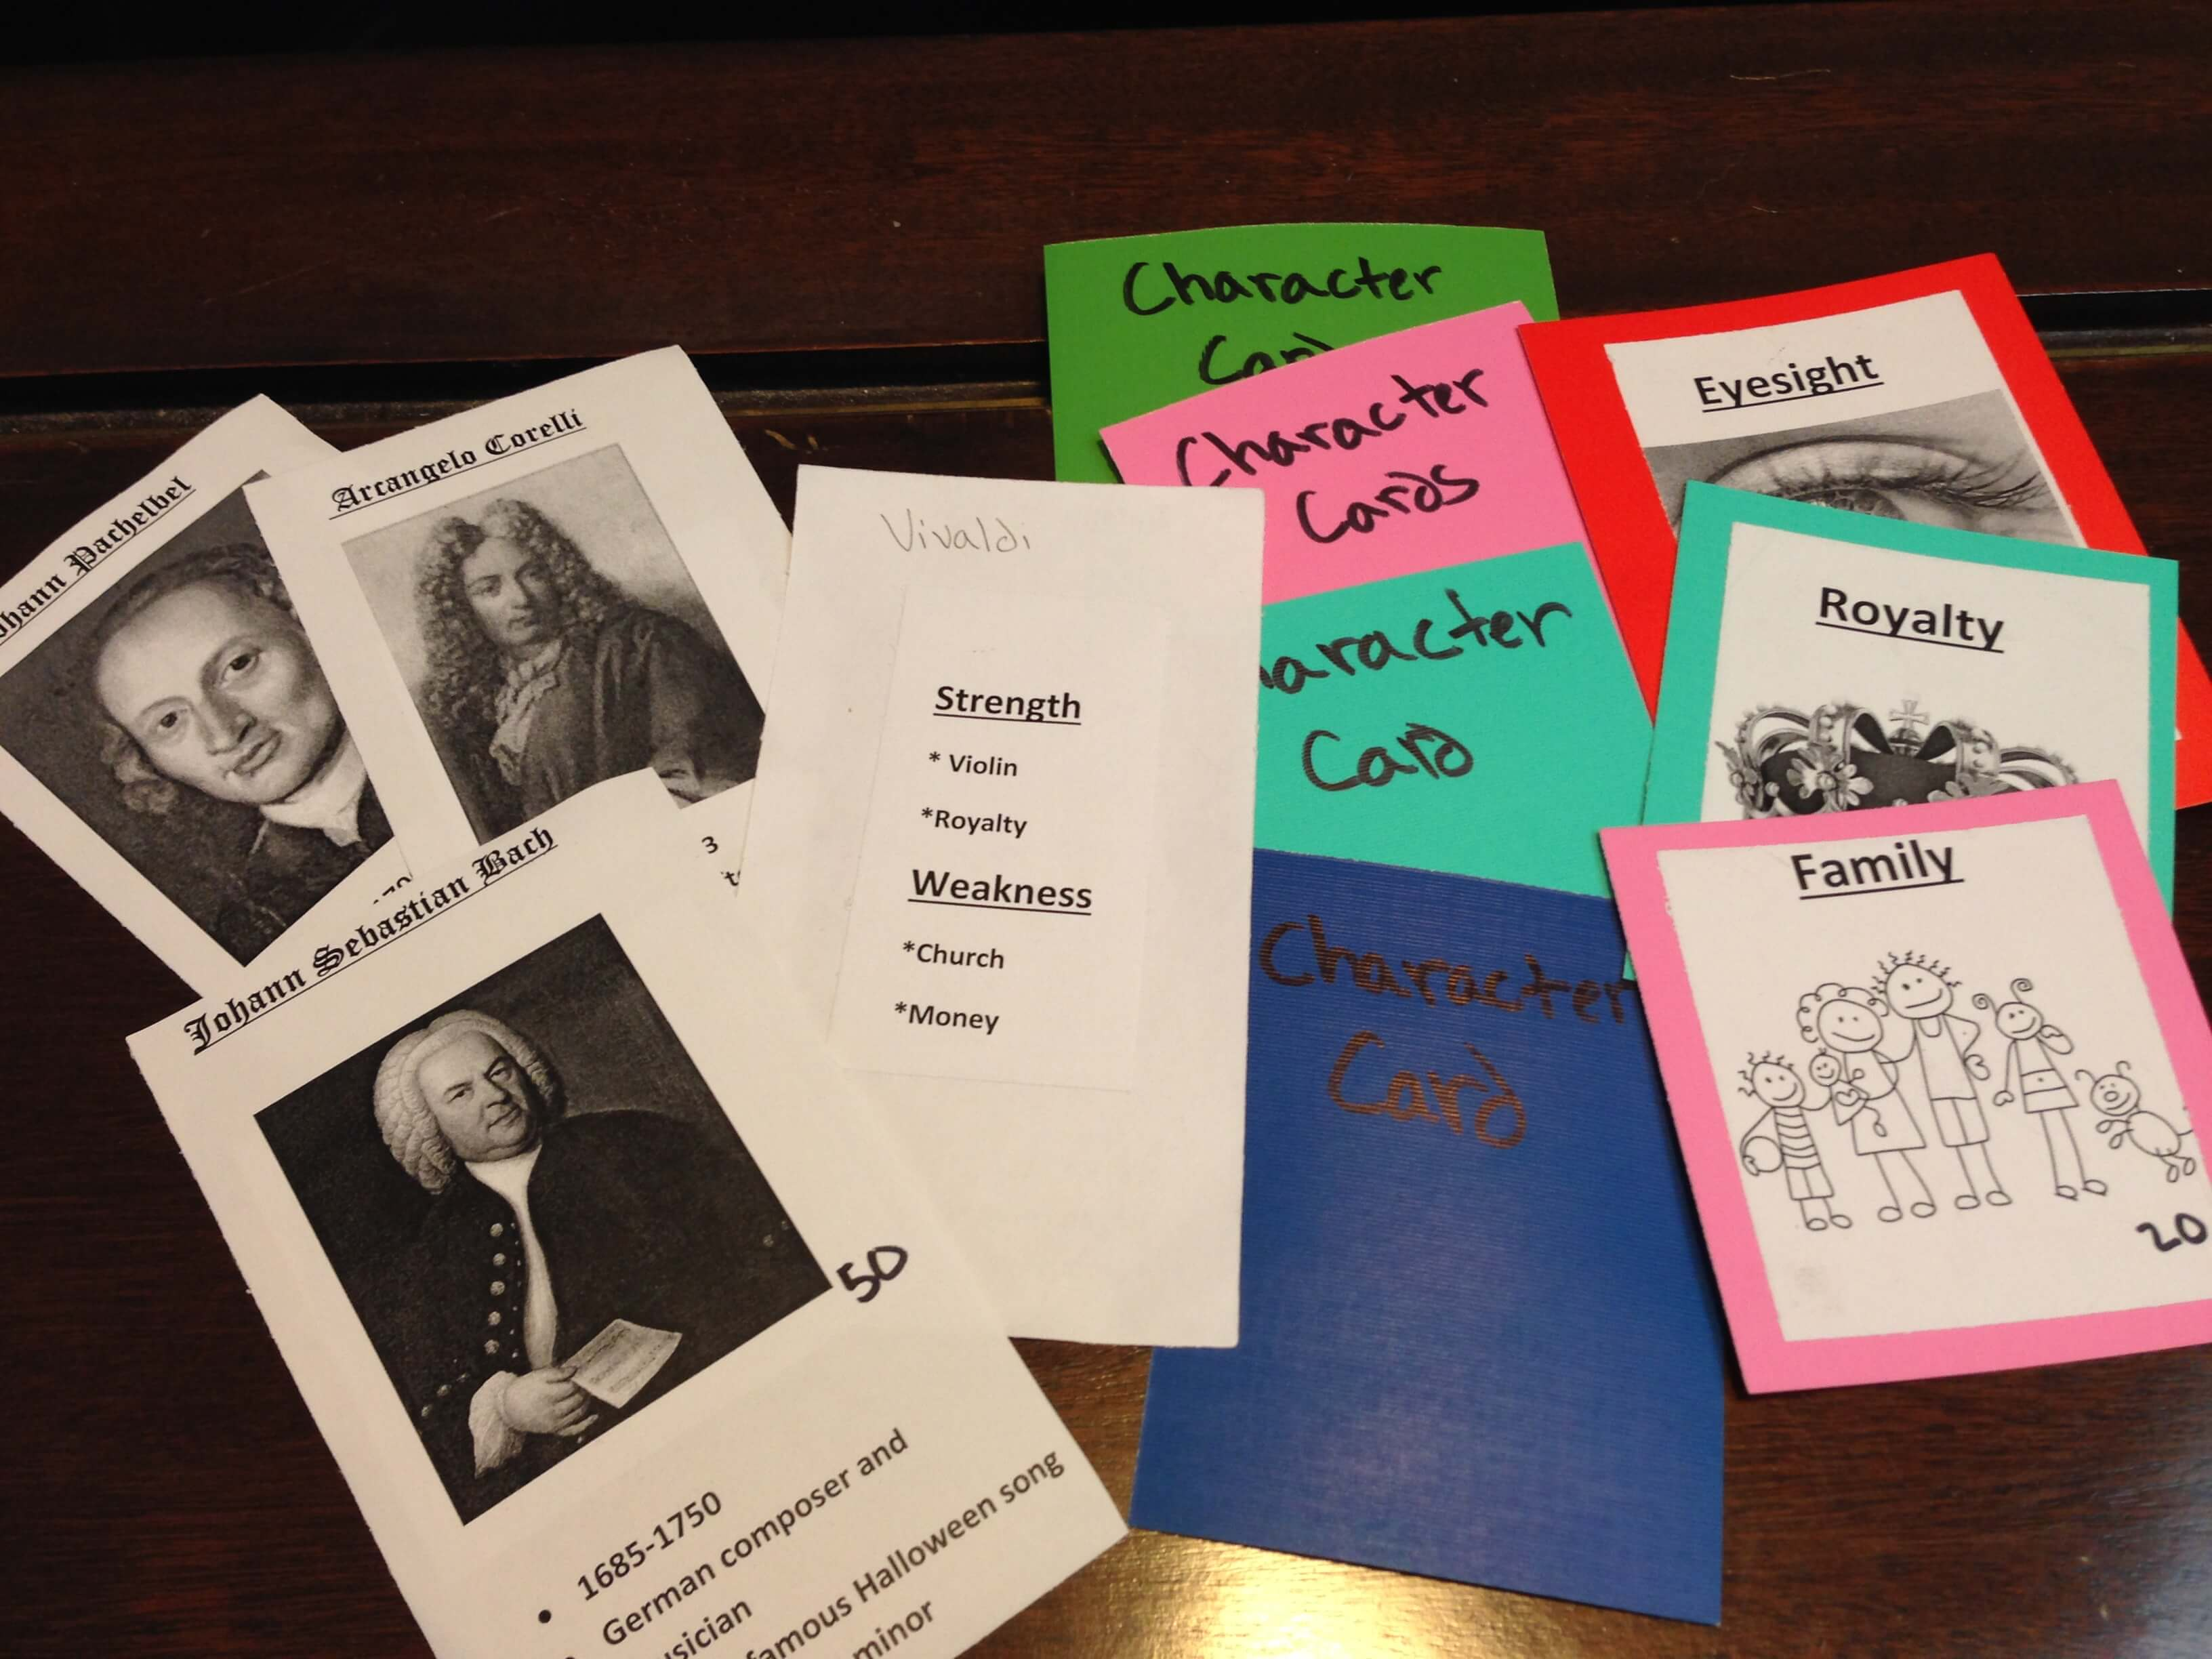 Baroque Music Composer Game made by a student at Dallas Piano Academy